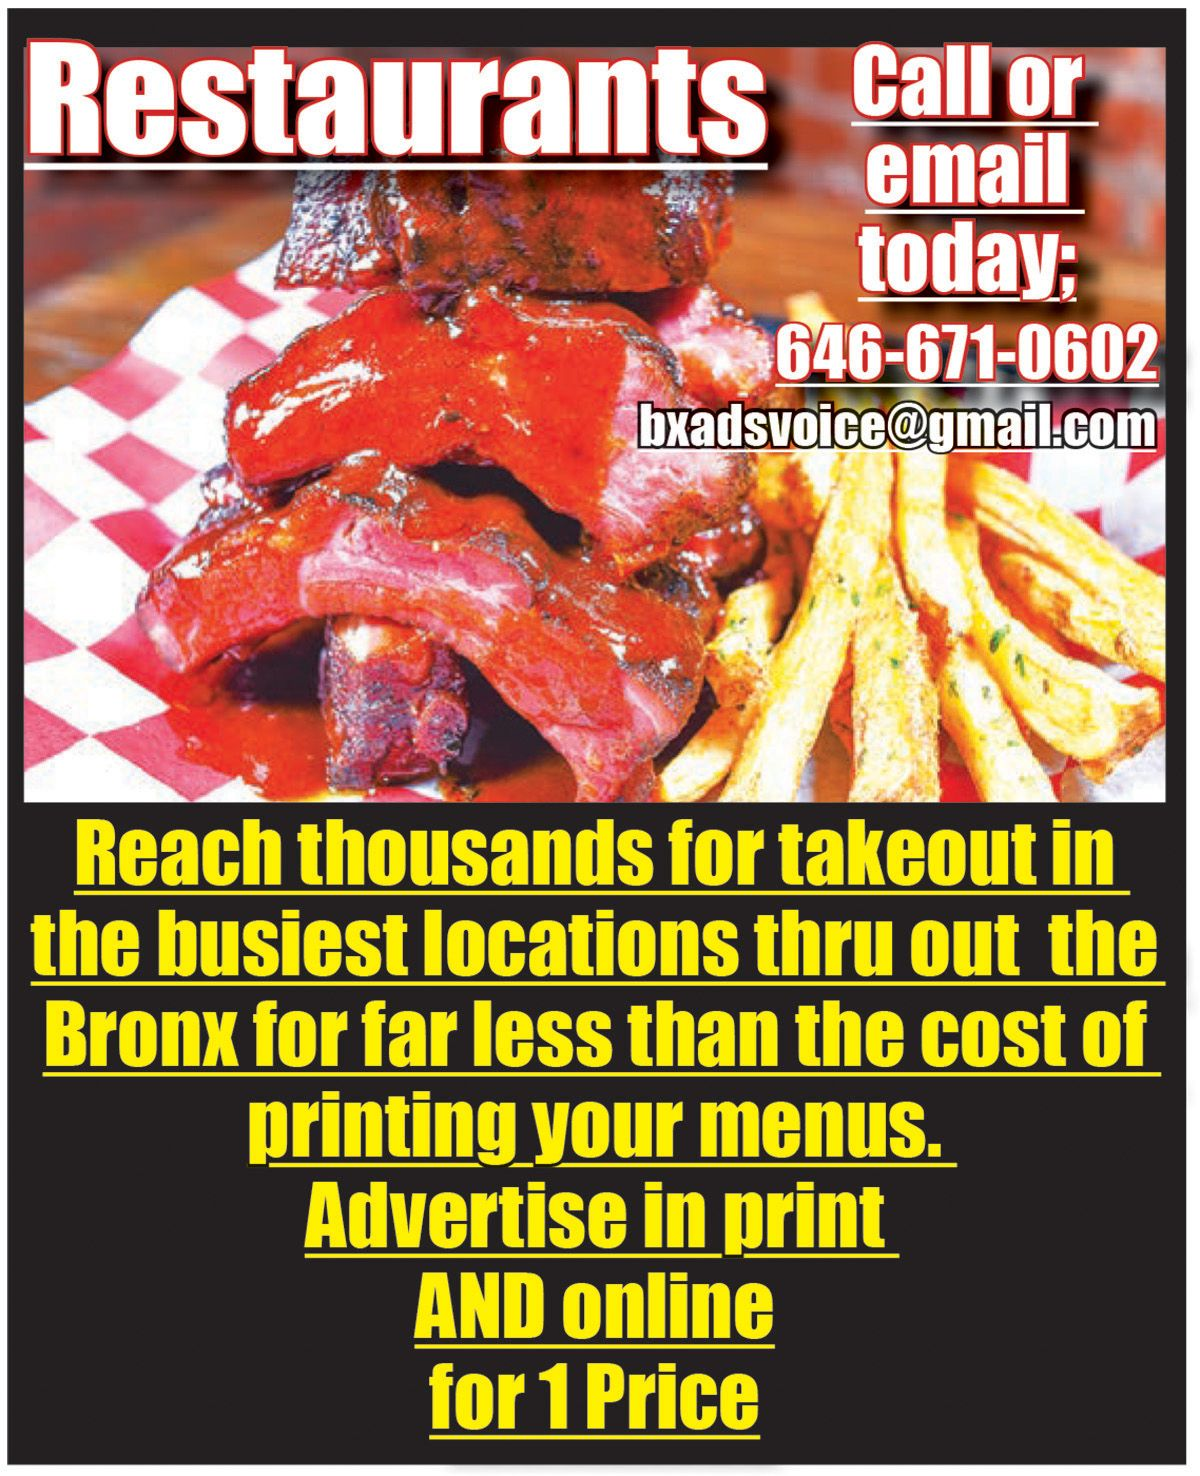 Advertise For Free Online In Bronx Bronx Voice Advertising Foodie Food